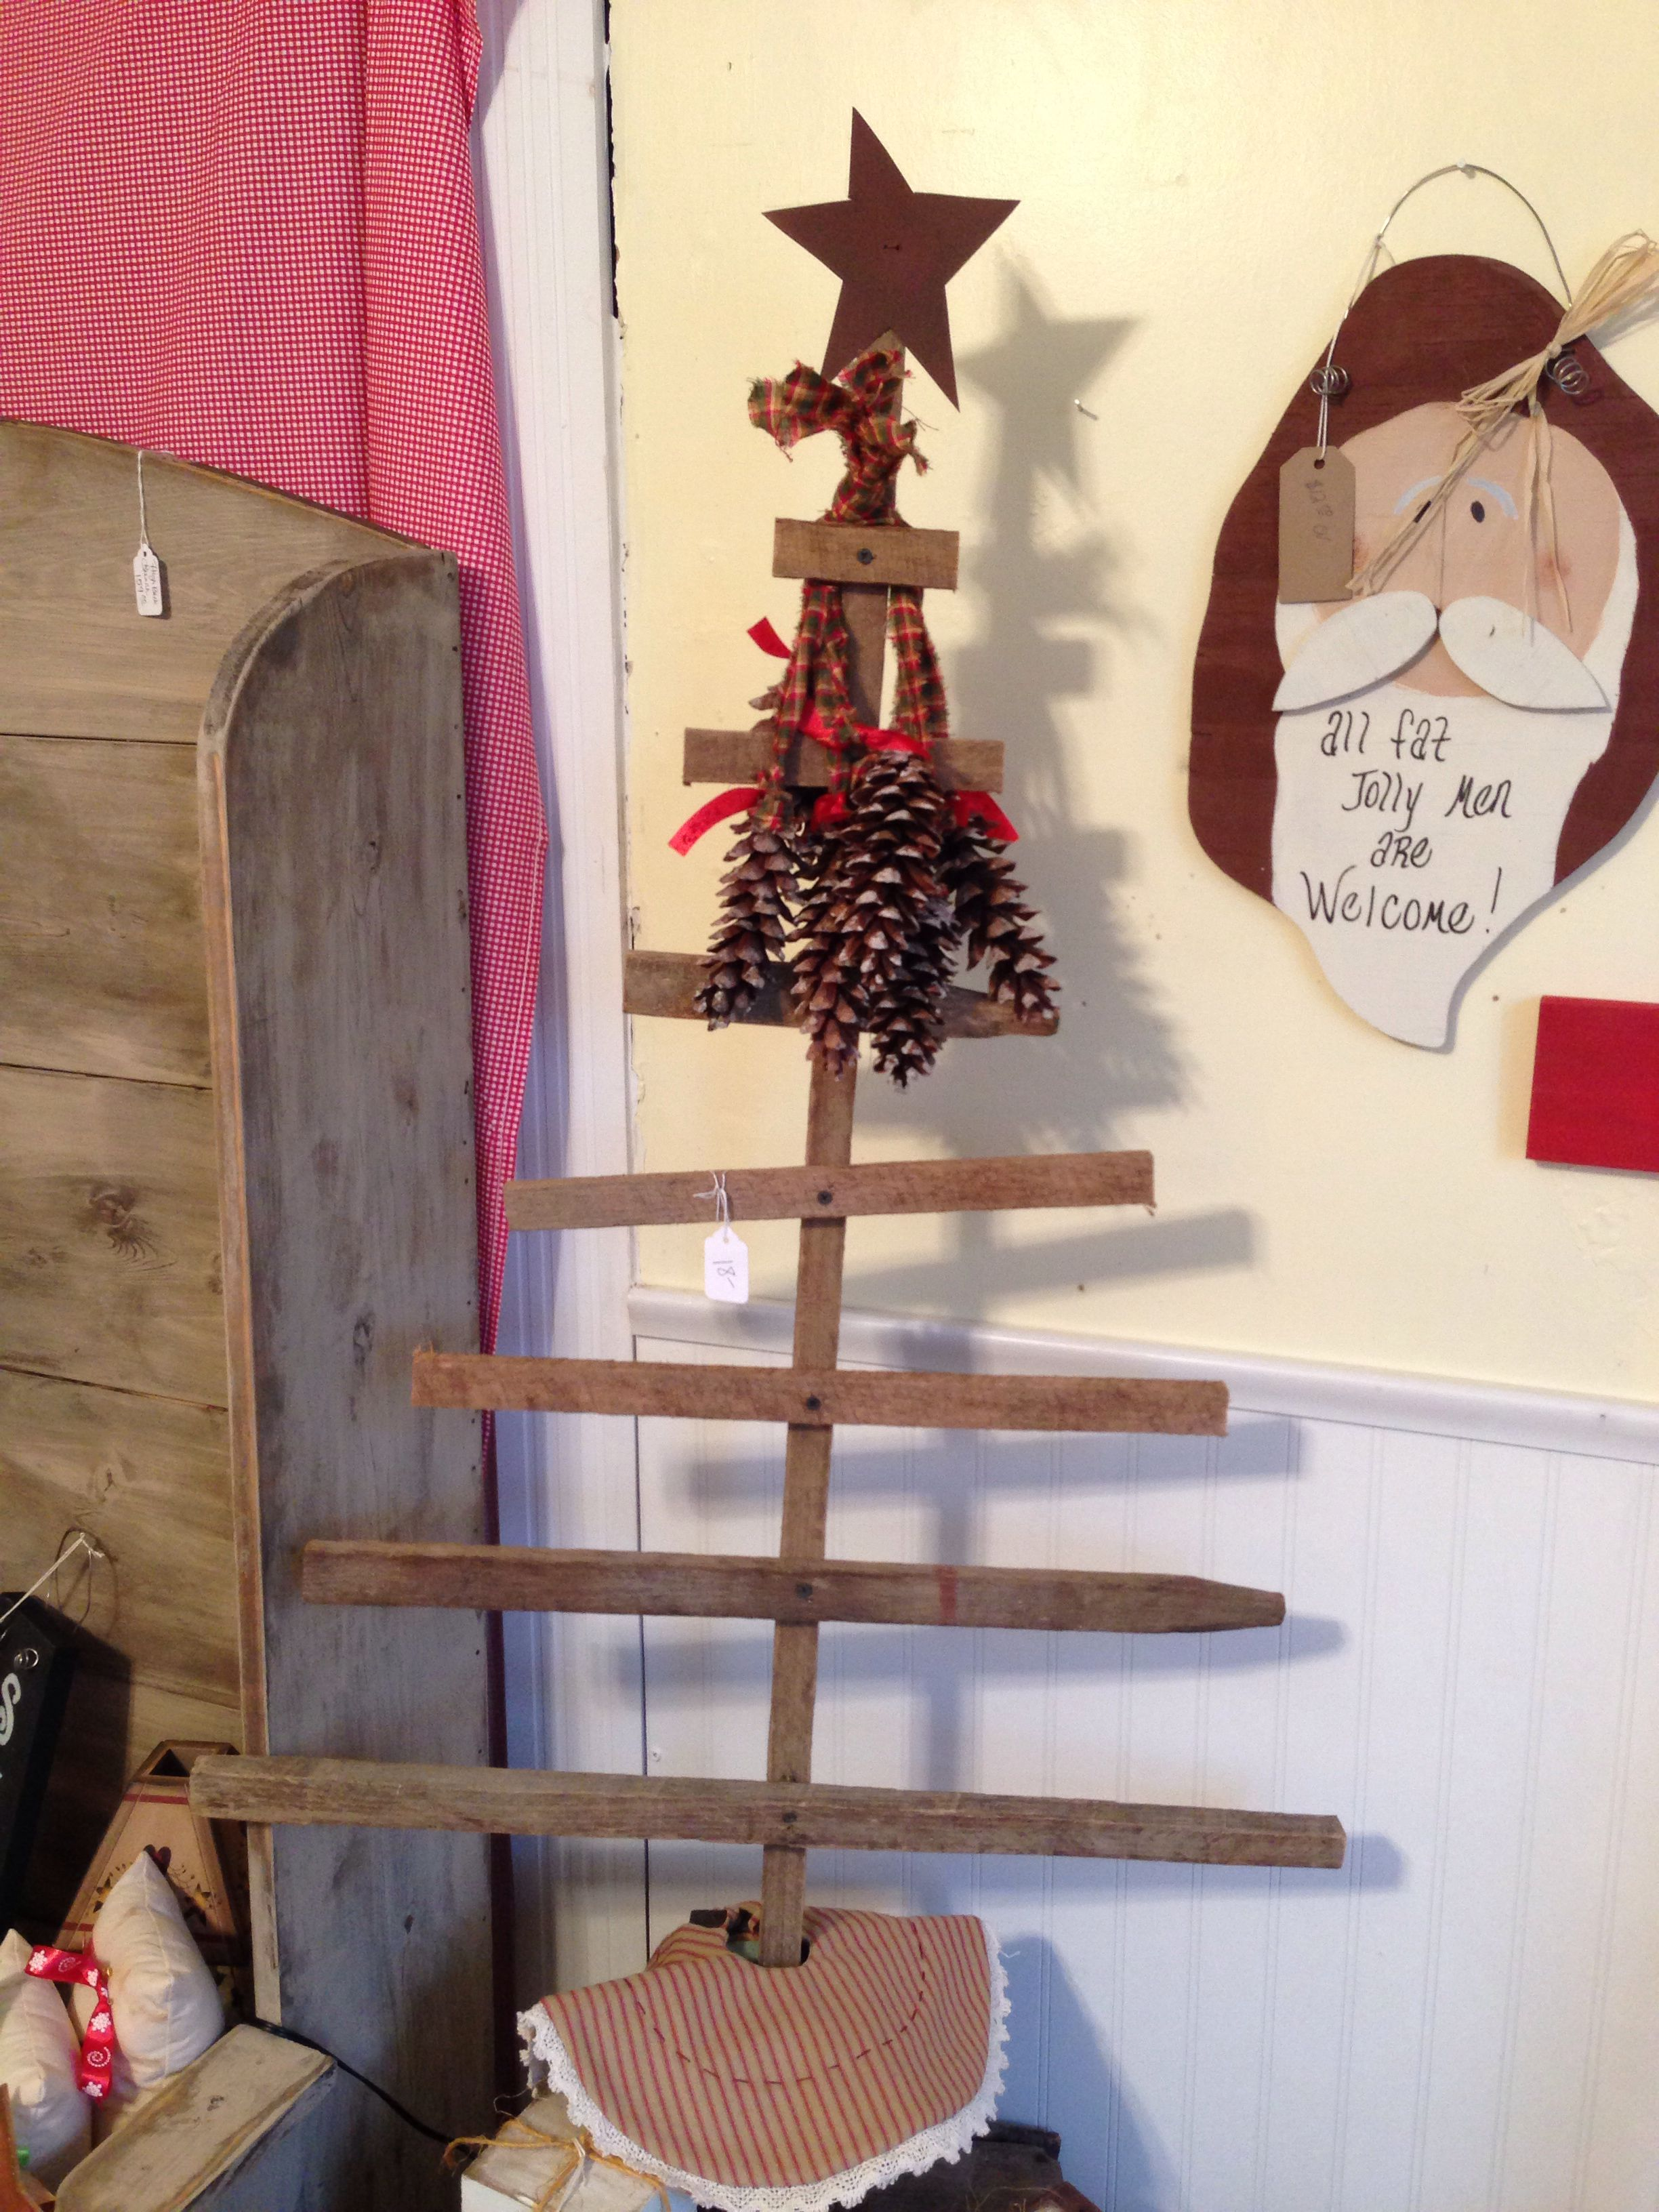 Tobacco Stick Tree Tobacco Sticks Stick Christmas Tree Wooden Christmas Trees